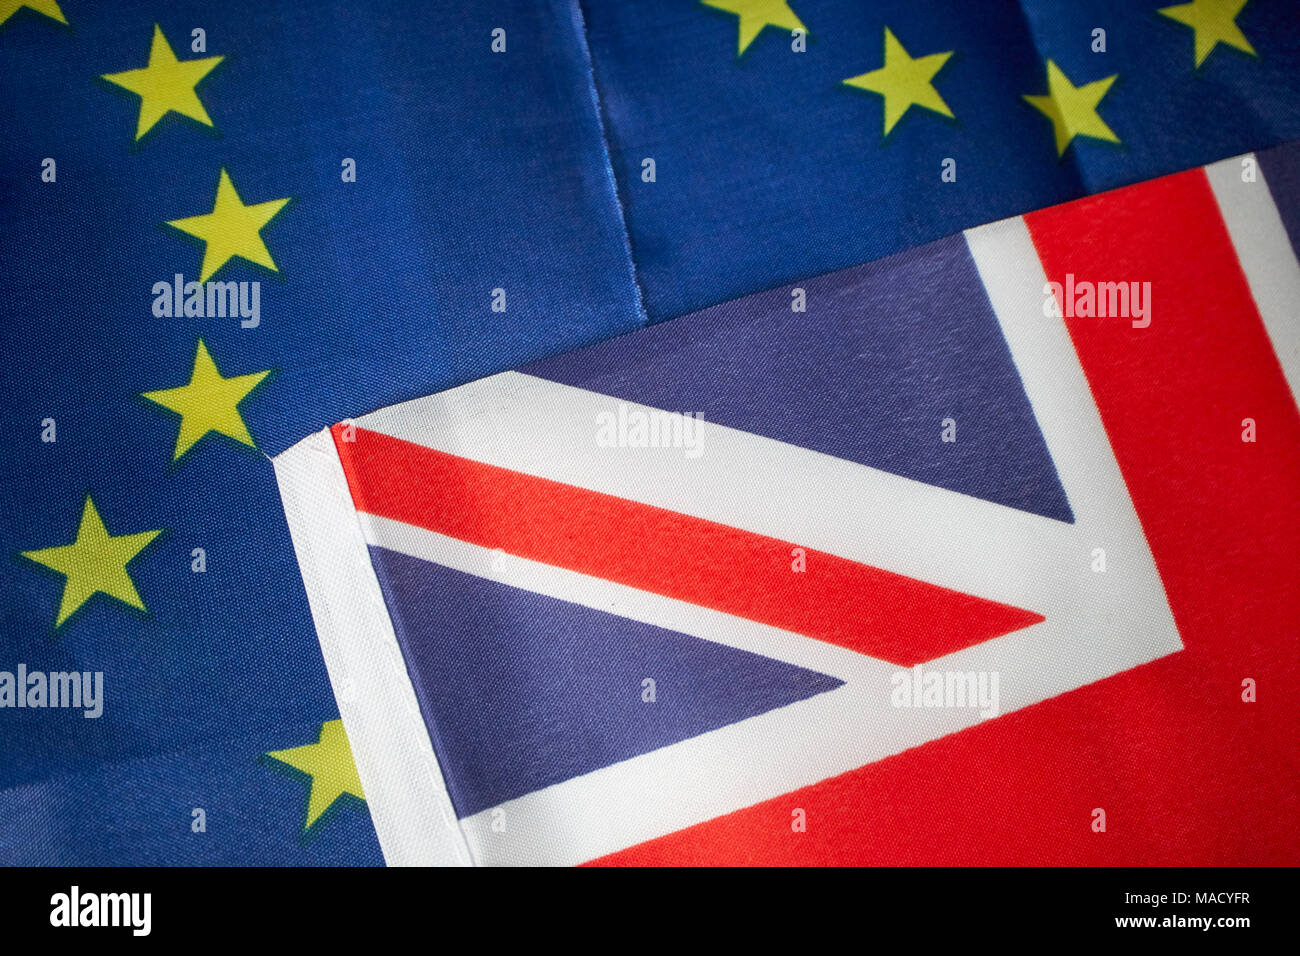 british union flag with multiple EU flags - Stock Image